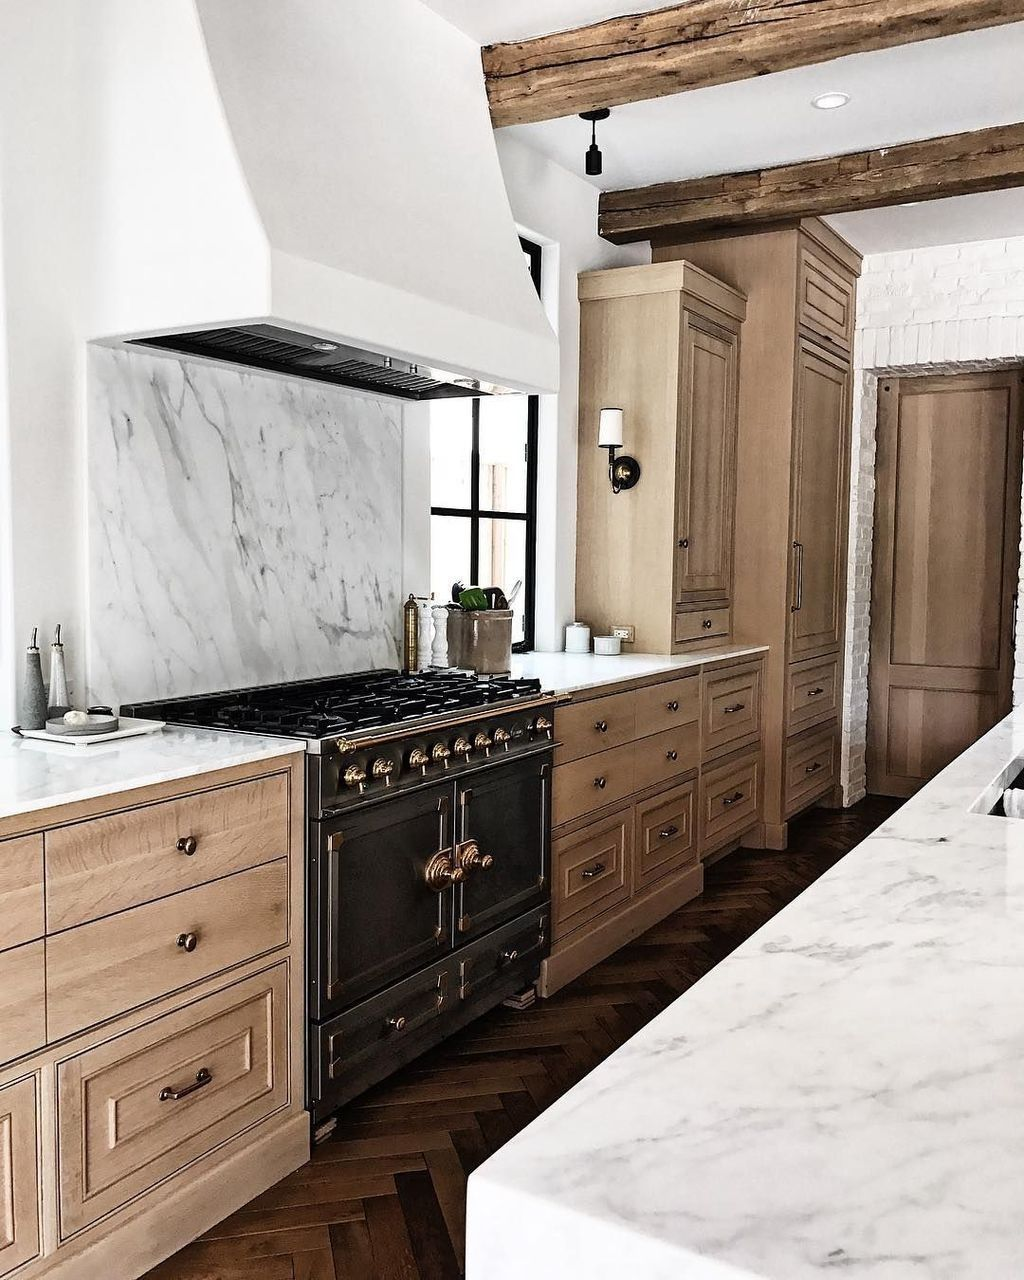 30 Most Popular Rustic Kitchen Ideas You Ll Want To Copy Rustic Kitchen Decor Rustic Kitchen Cabinets Rustic Kitchen Design